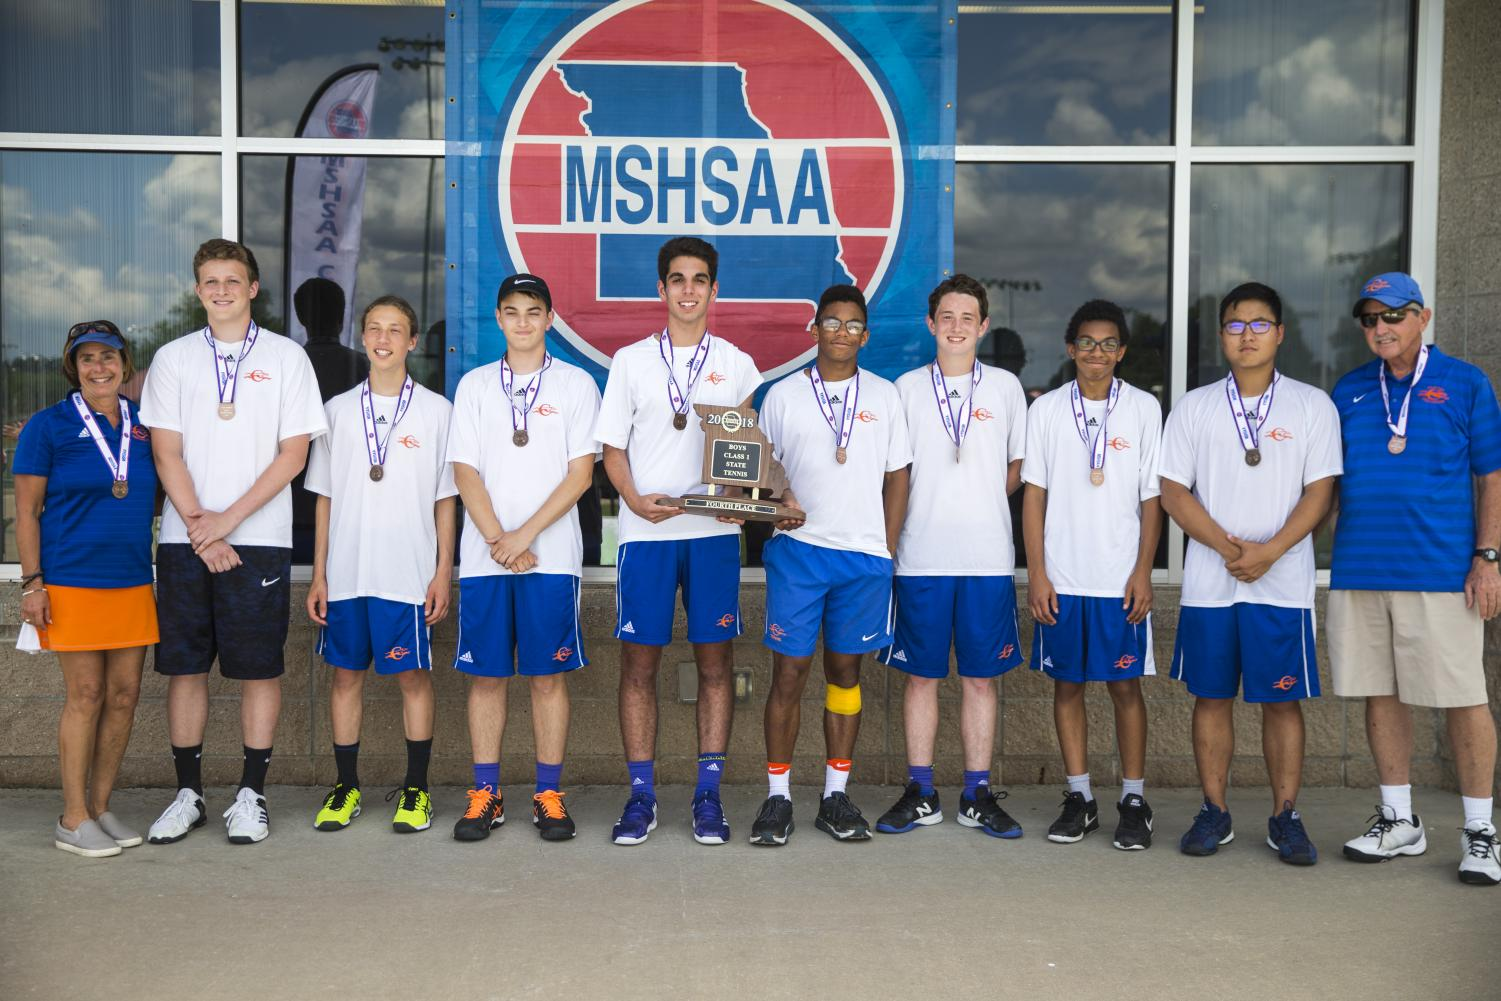 Coach Suzie Luten, far left, and the 2018 CHS Boys Tennis Team took home 4th place in the annual MSHSAA State Championships at Cooper Tennis Complex in Springfield, MO.